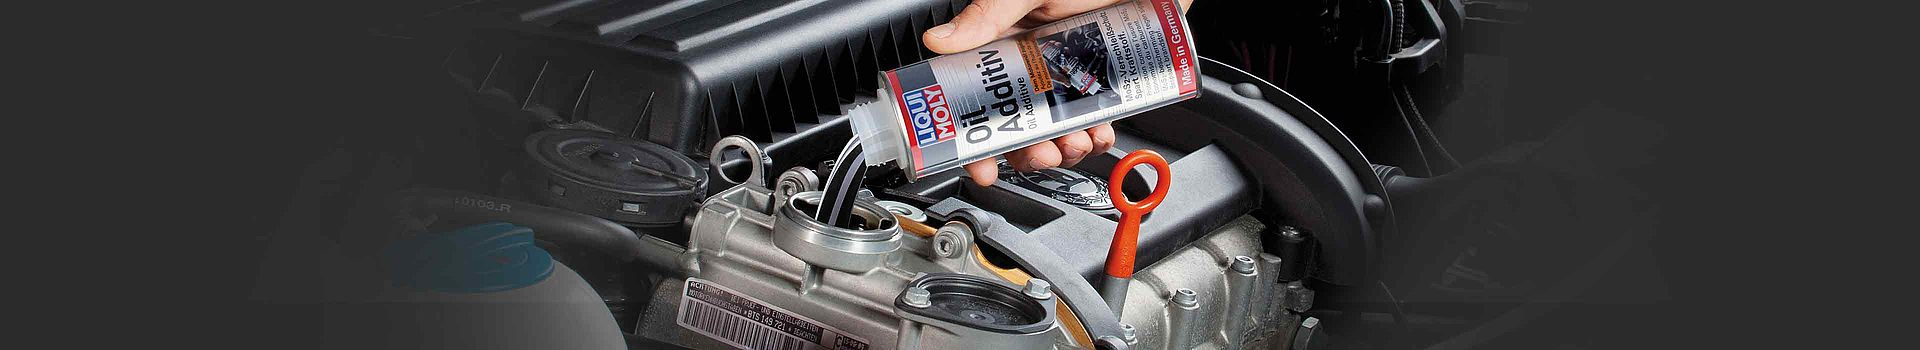 Visual zu LIQUI MOLY Addditiven: Einkippen des LIQUI MOLY Oil Additivs